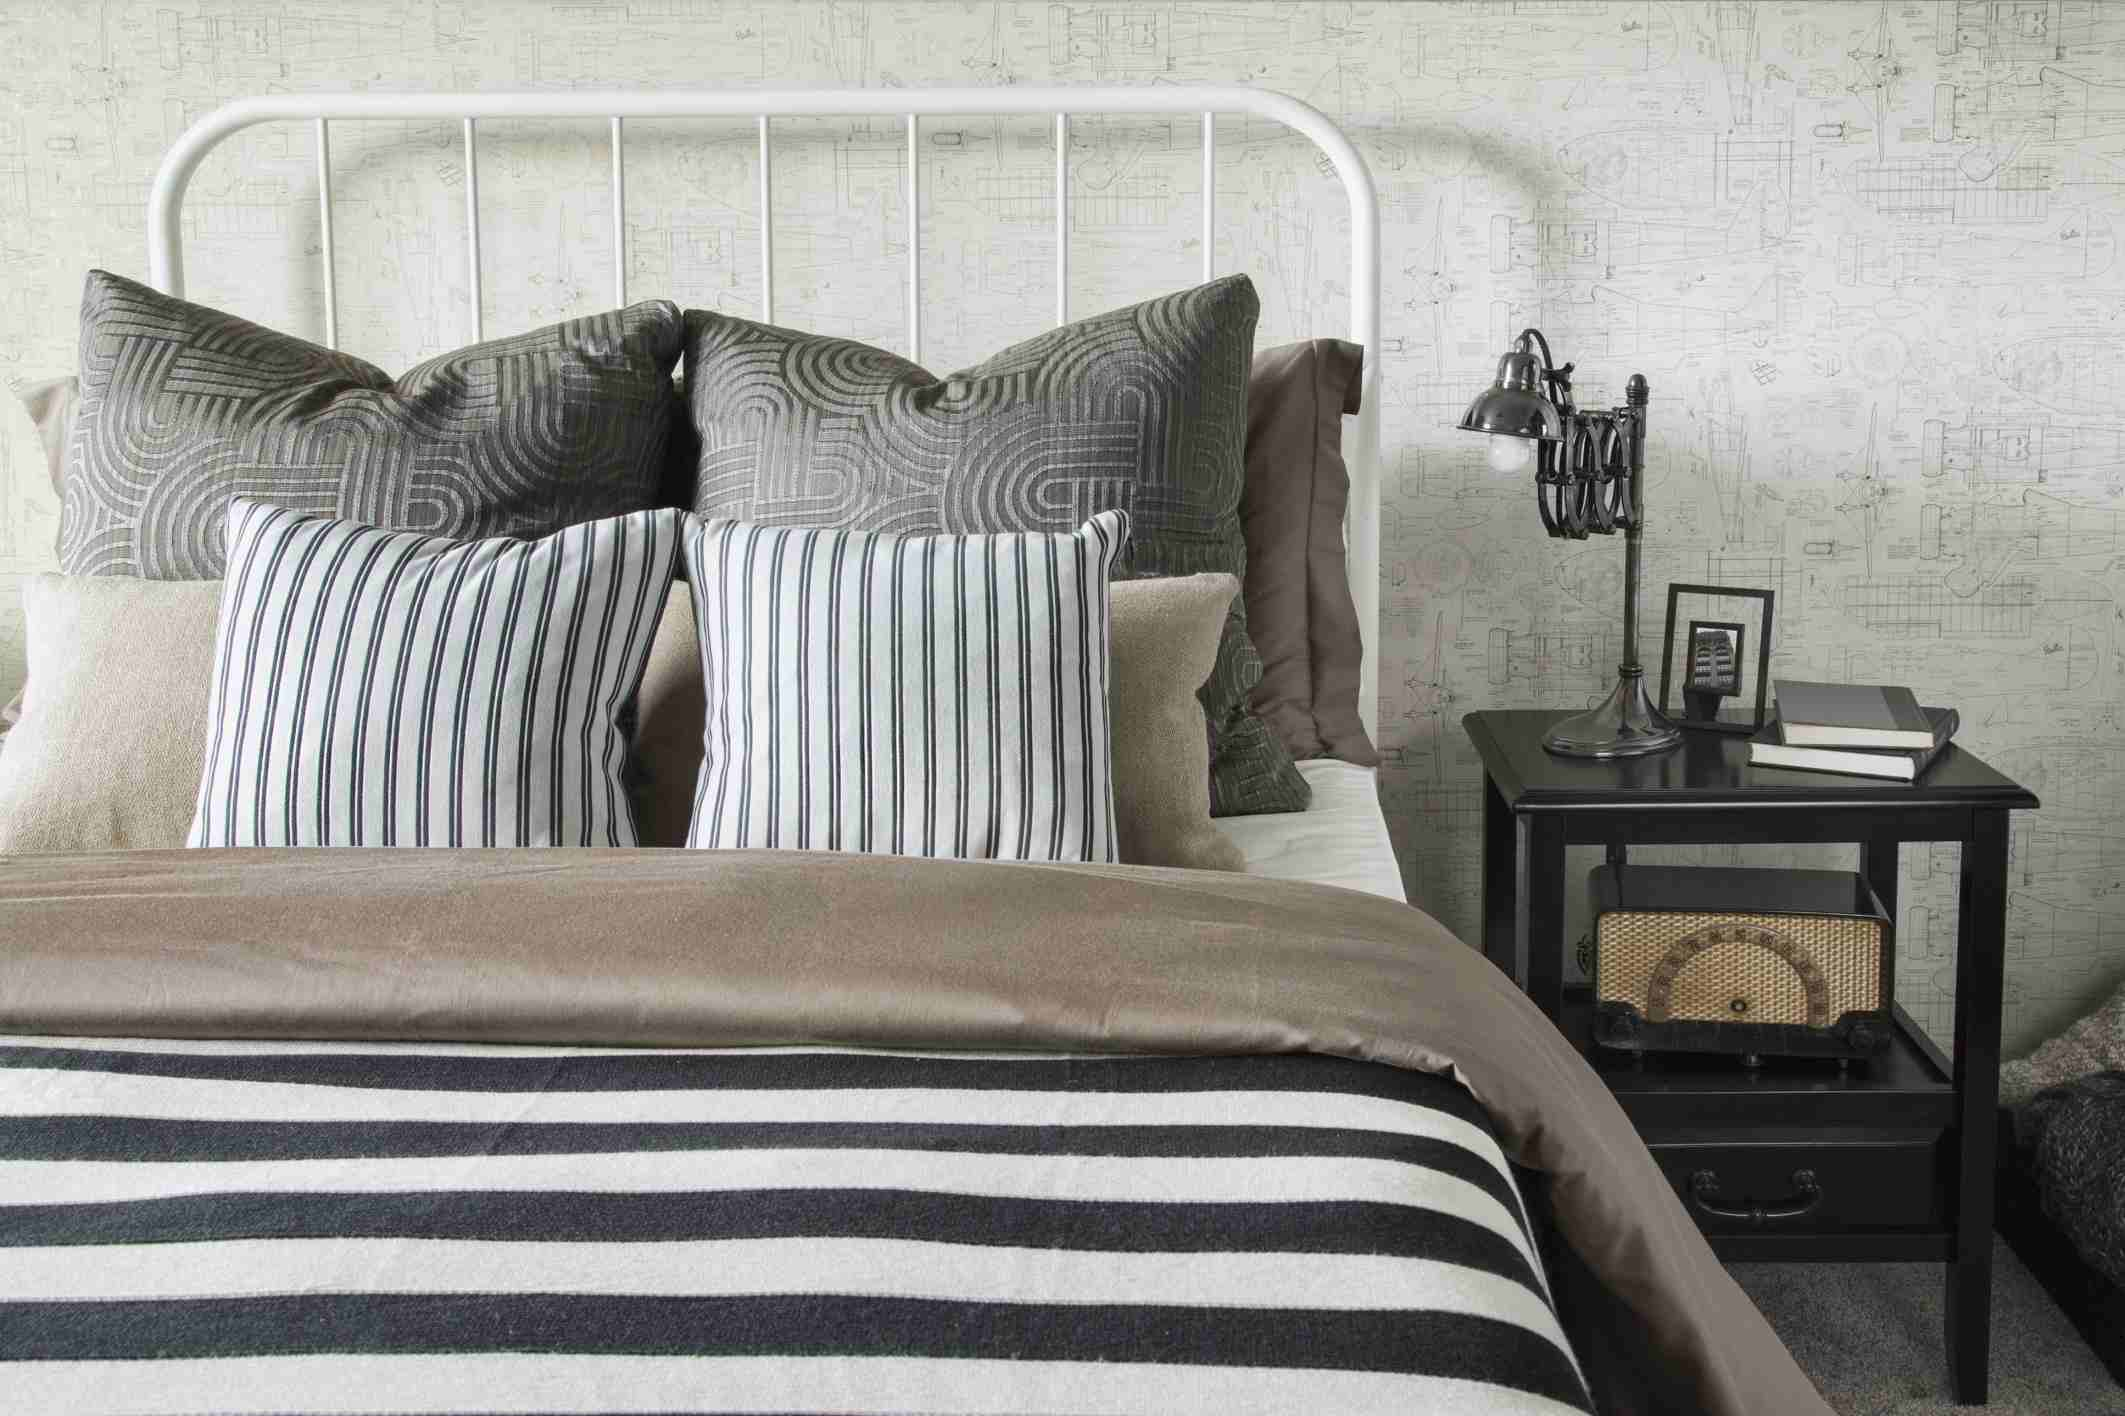 9 Bed Making Mistakes and How to Fix Them